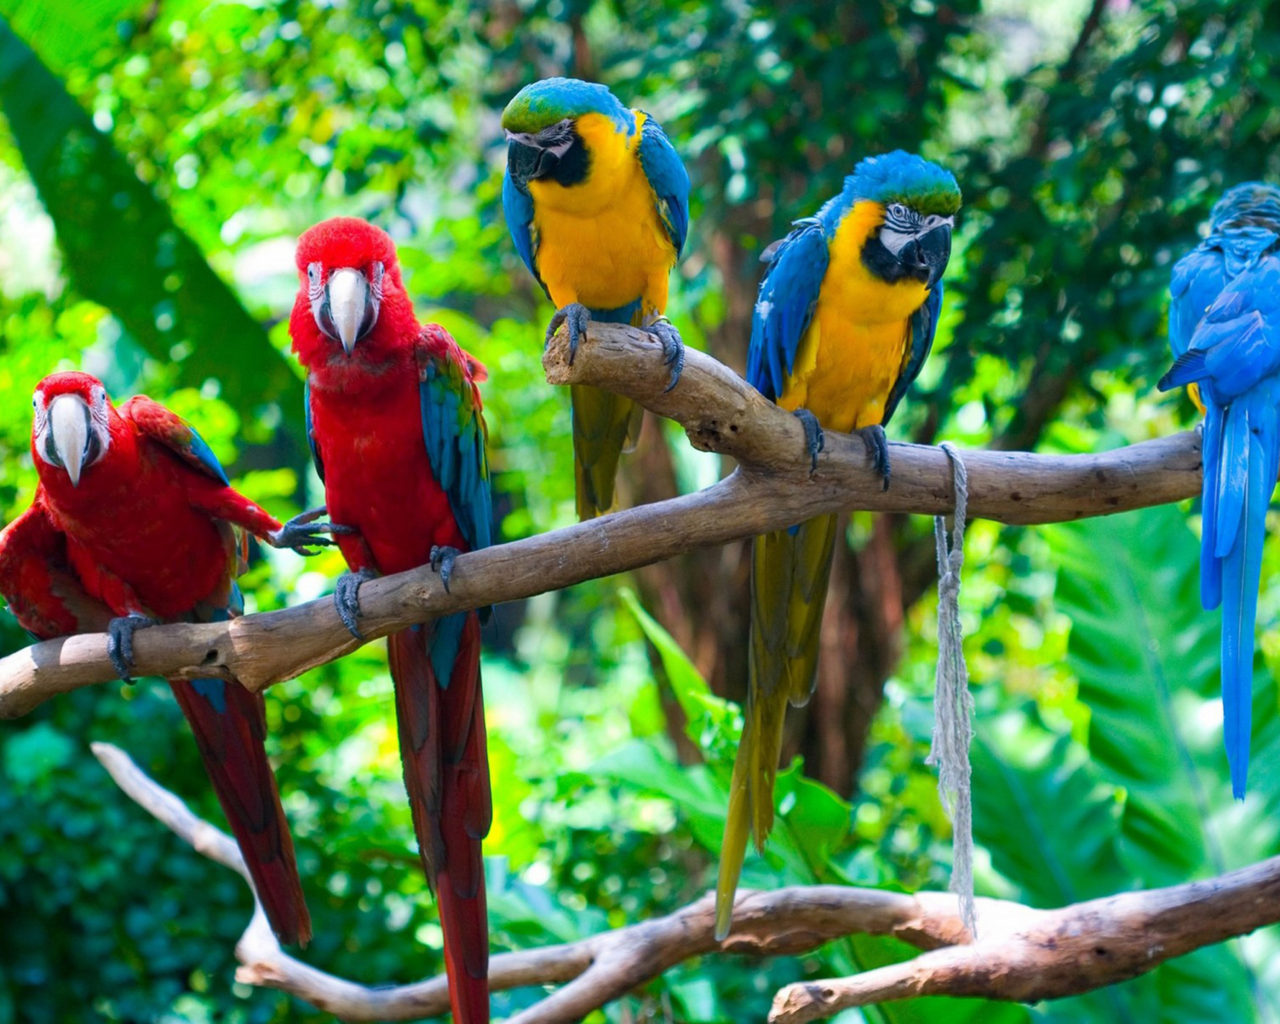 1920x1200 Fall Wallpaper Colorful Parrots On Branch Background Position Of Egotism